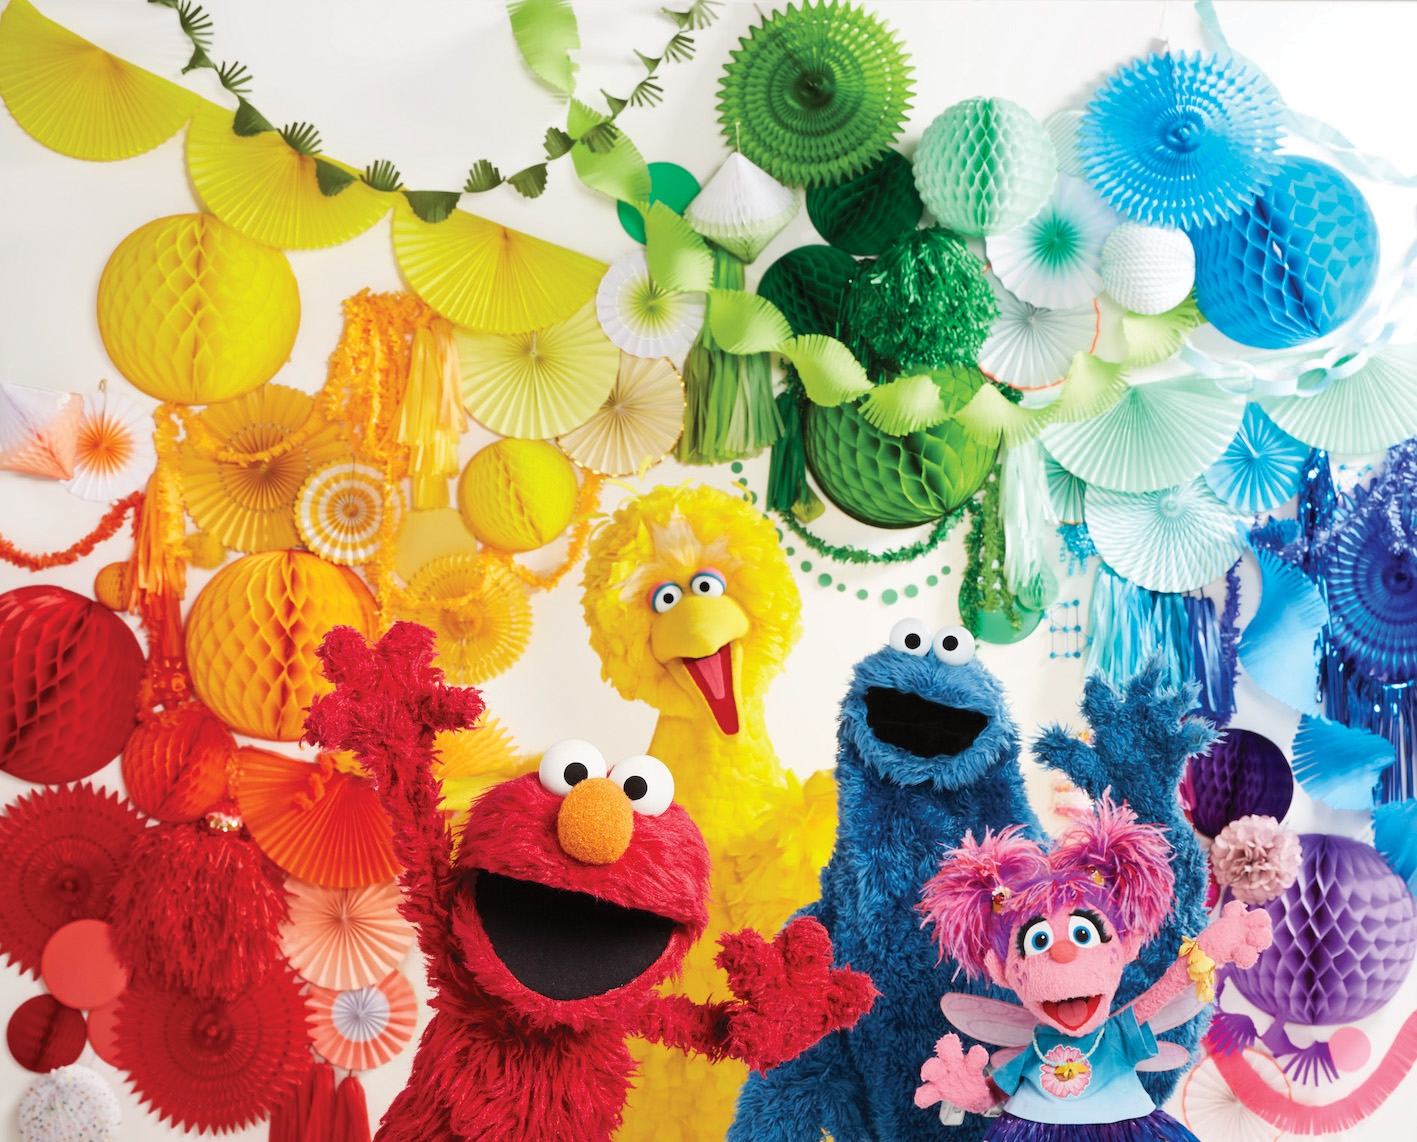 Melbourne Central celebrates 50 years of Sesame Street with an animated art exhibition